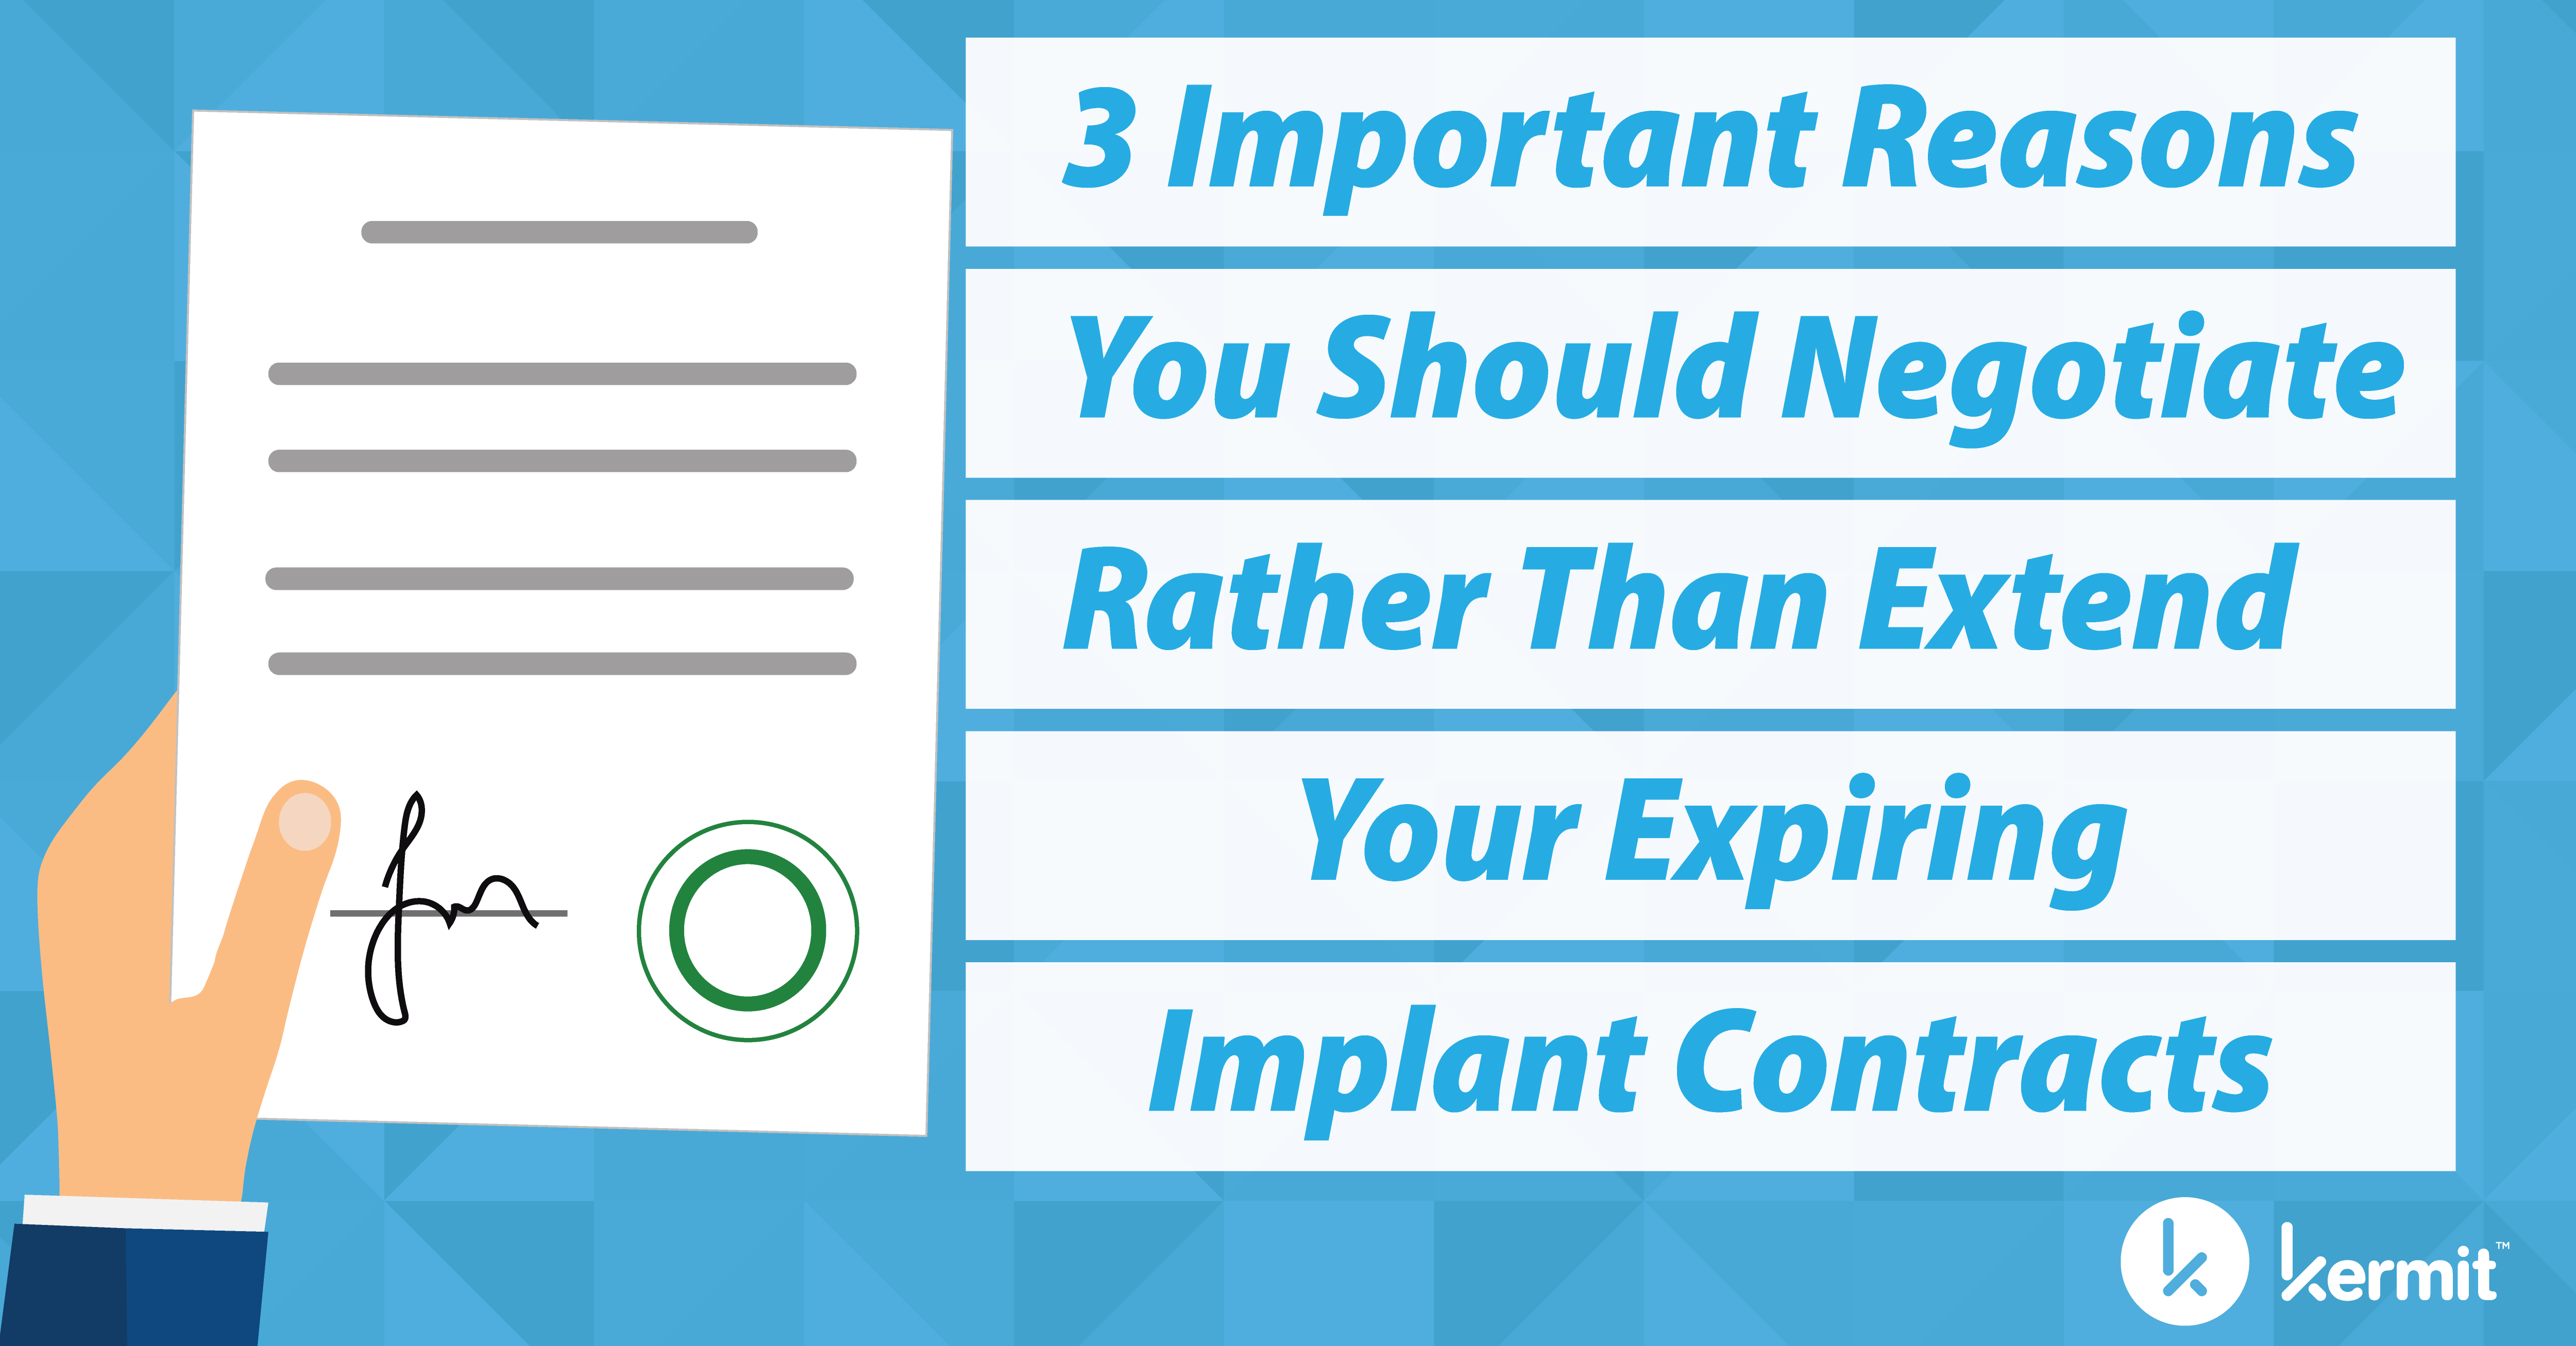 Three Important Reasons You Should Negotiate Rather Than Extend Your Expiring Implant Contracts